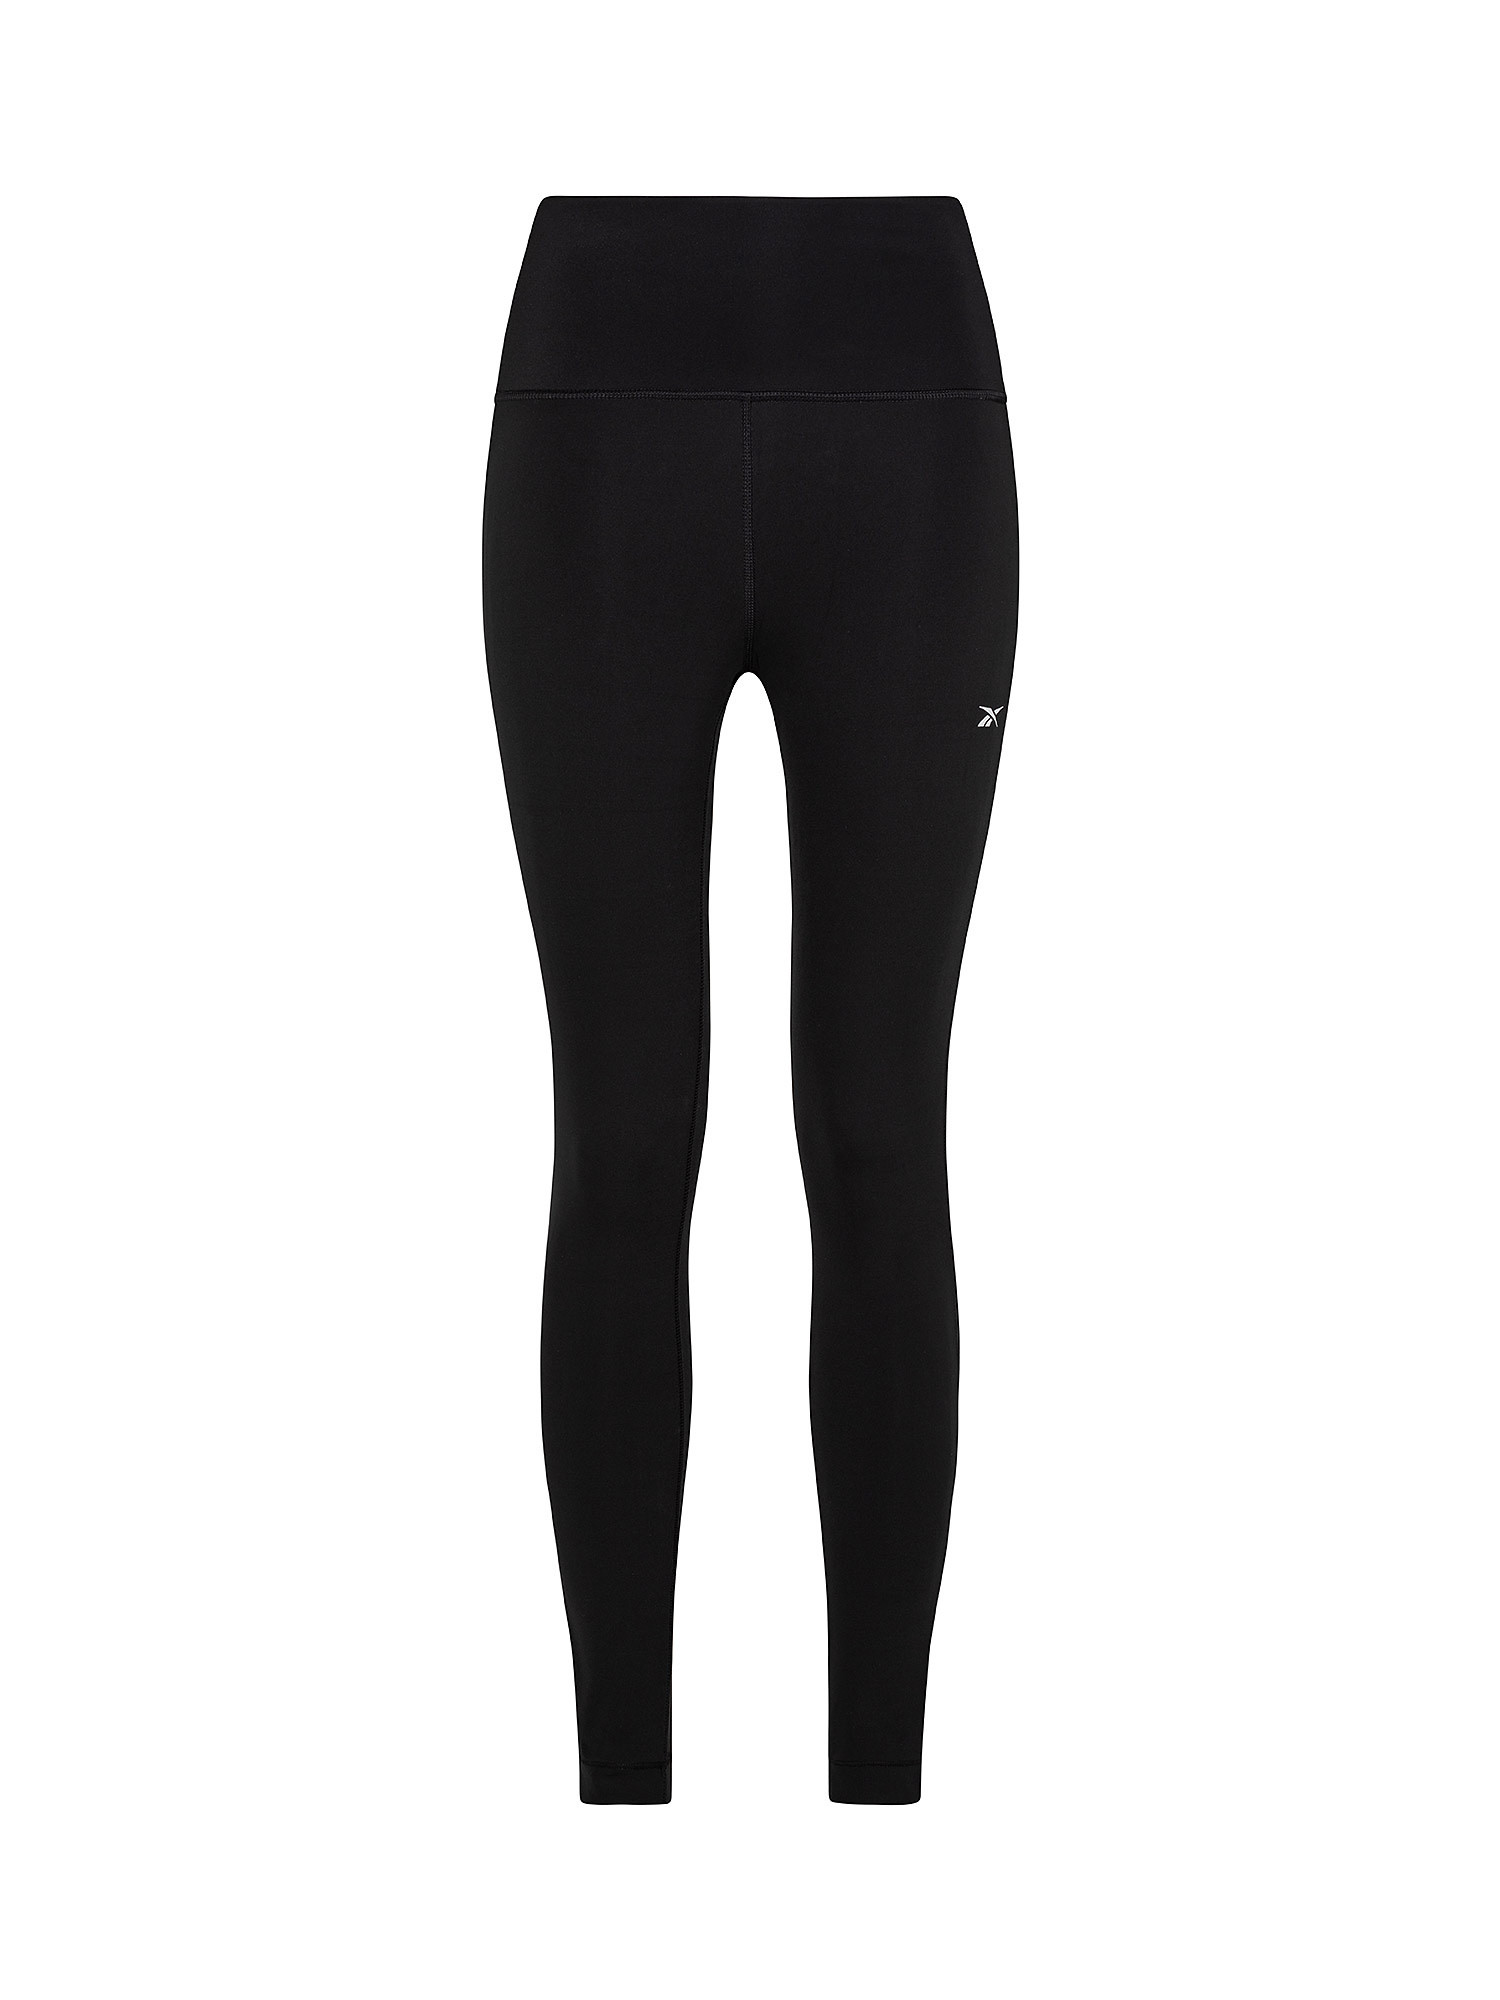 Leggings Lux High-Rise Perform, Nero, large image number 0